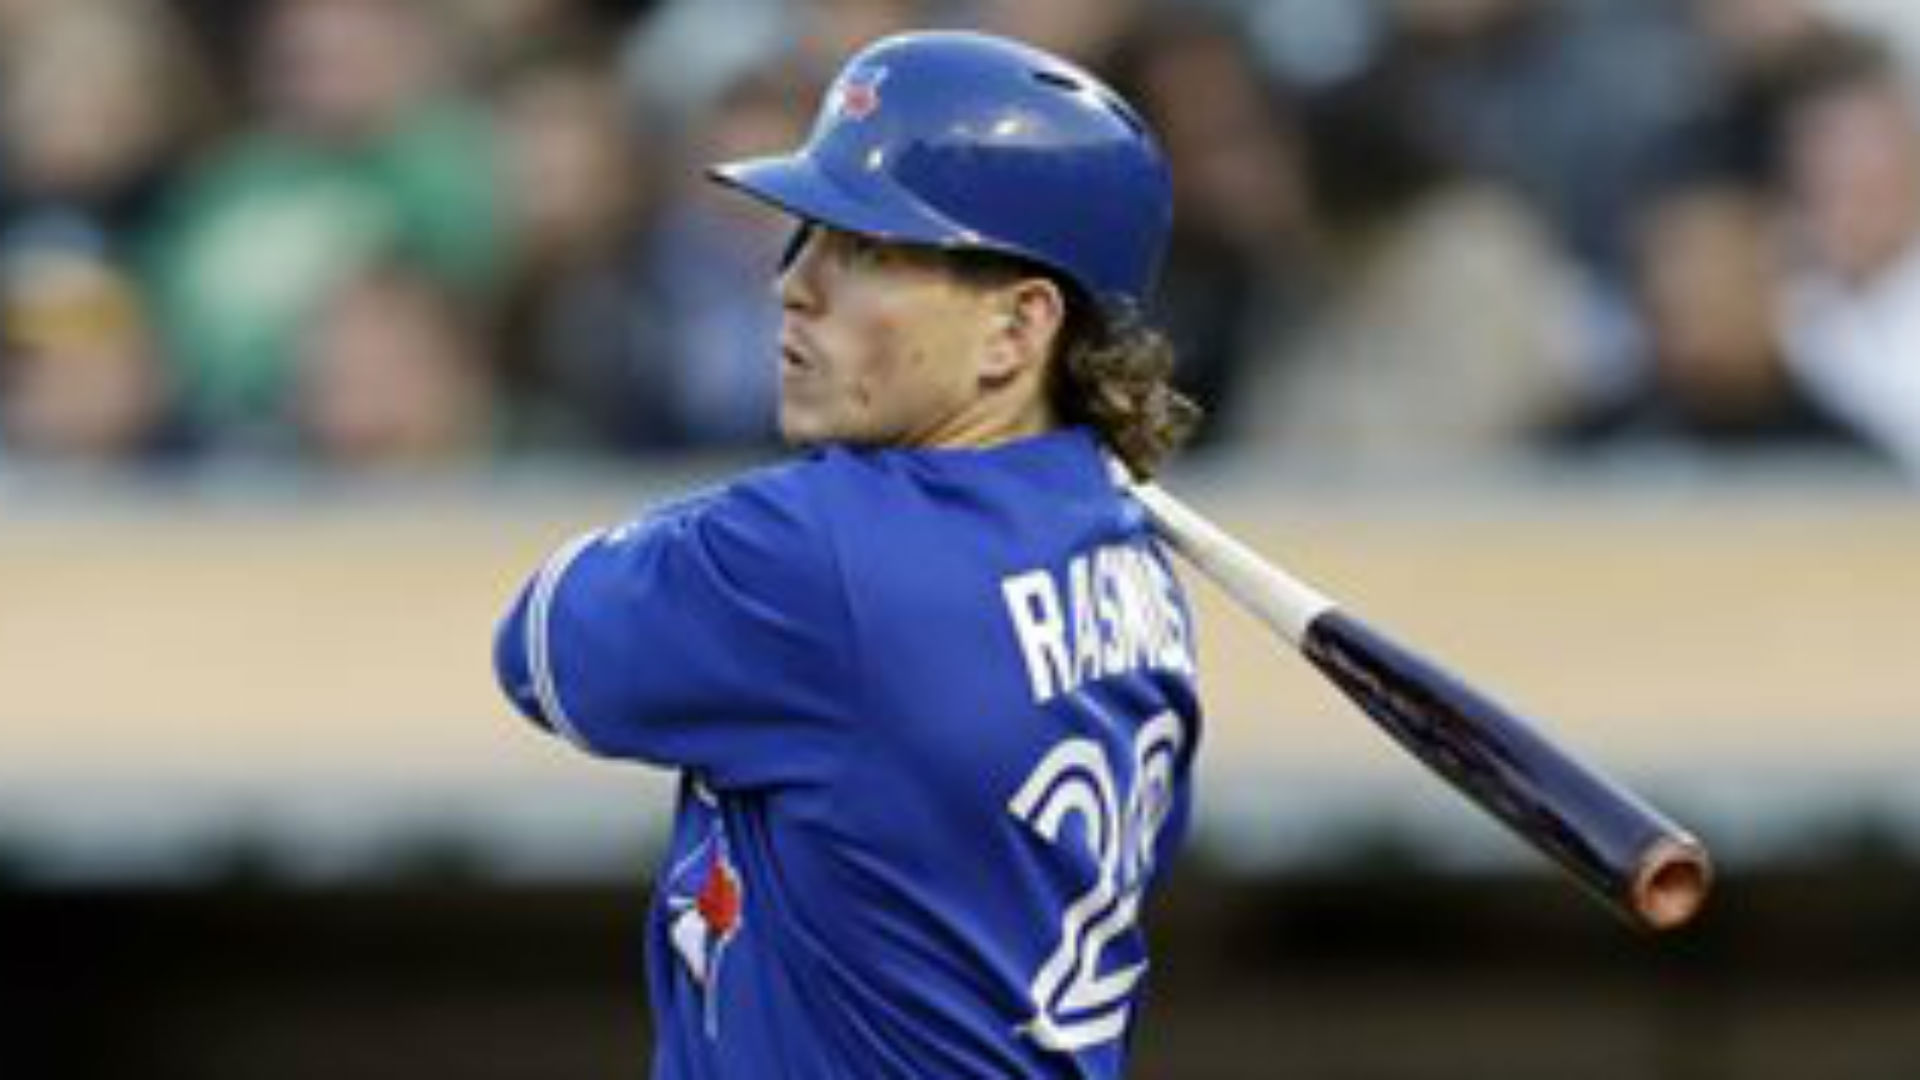 Fantasy baseball sleepers: Blue Jays' Colby Rasmus